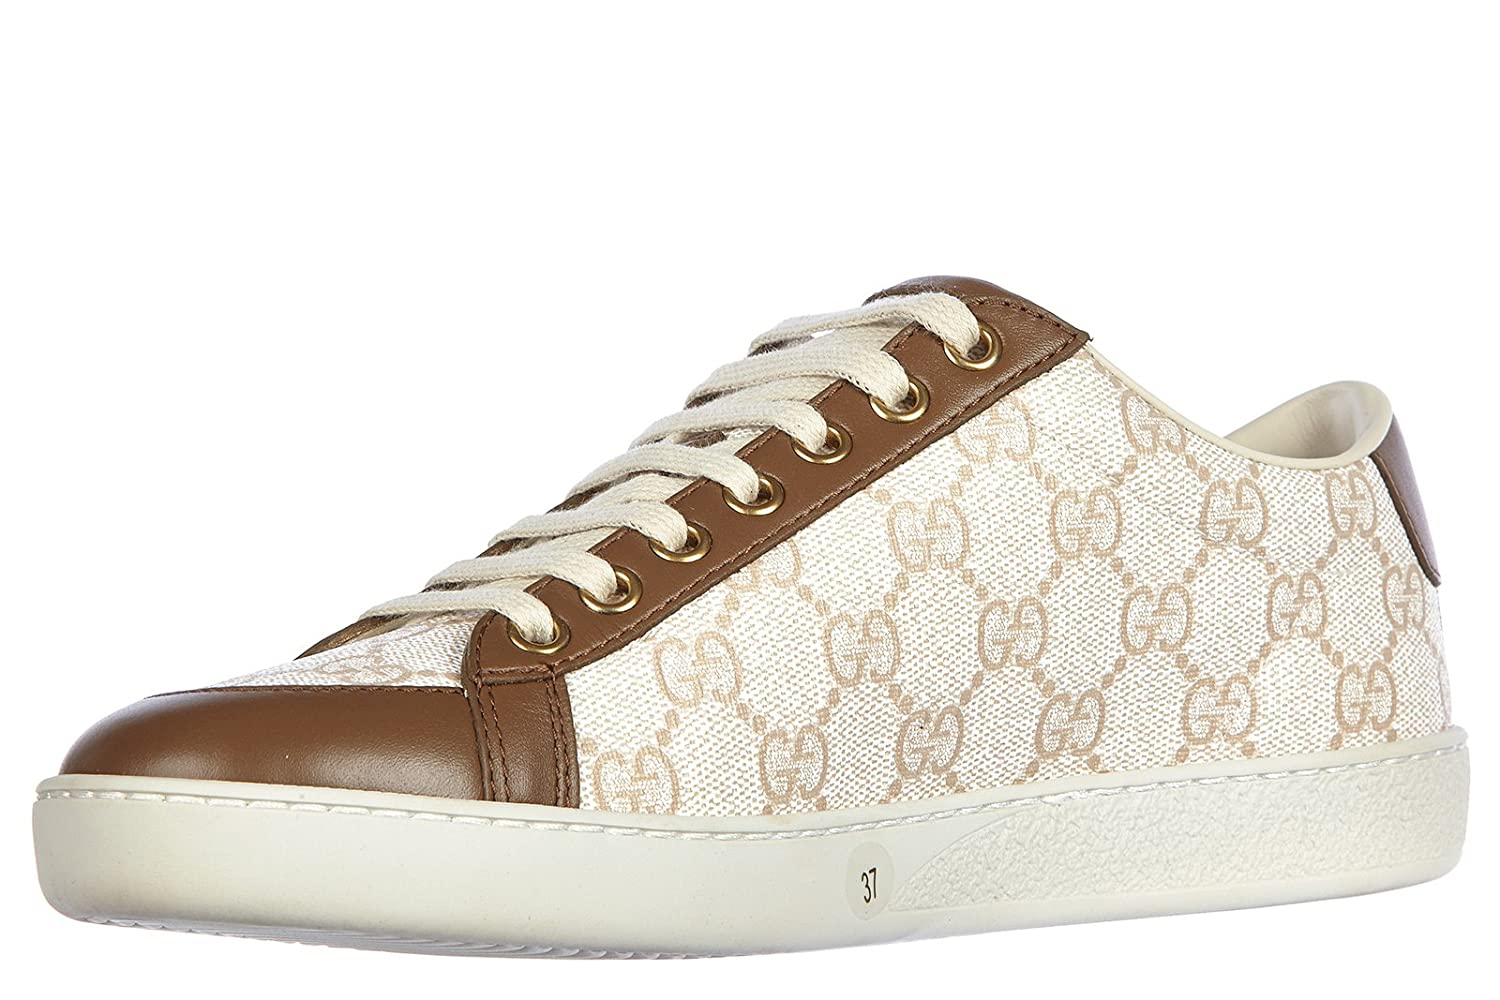 Gucci Scarpe Sneakers Donna in Pelle Nuove GG Supreme Miro Soft Marrone   Amazon.it  Scarpe e borse ffc088c1c1e7